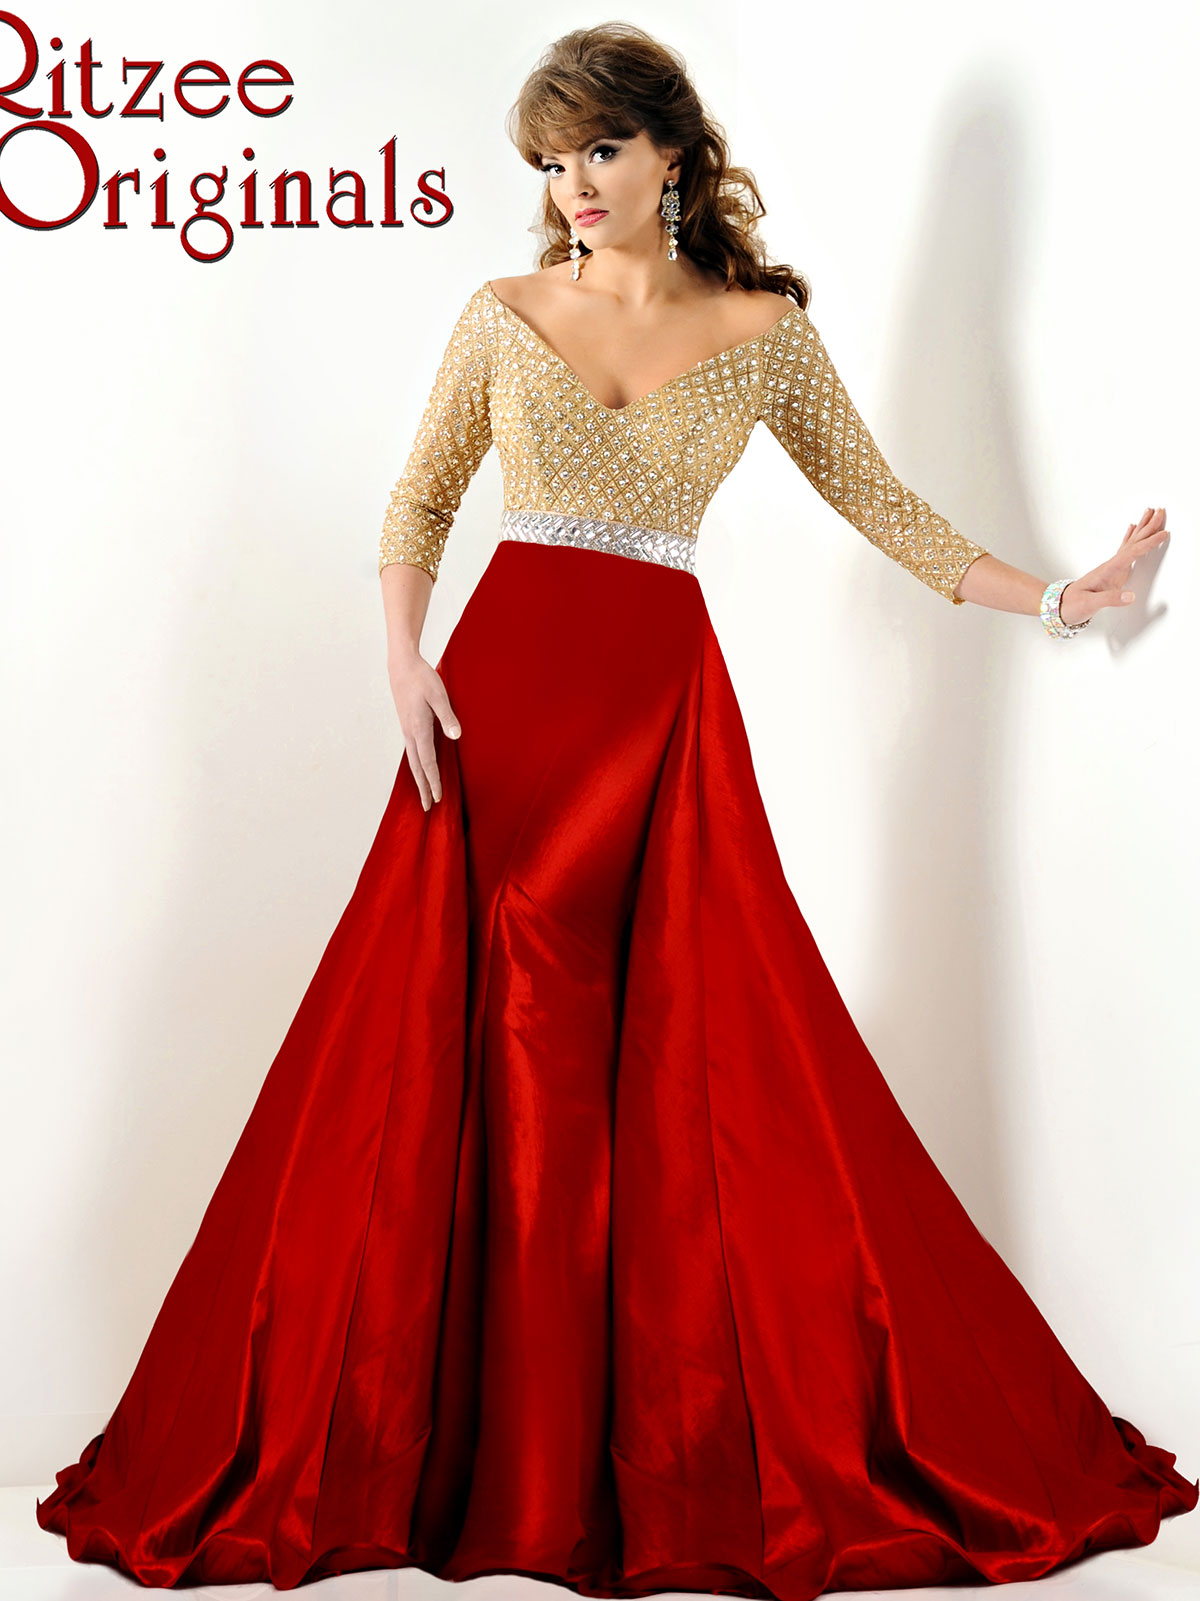 Ritzee Originals 2855 Long Sleeved Pageant Dress|PageantDesigns.com